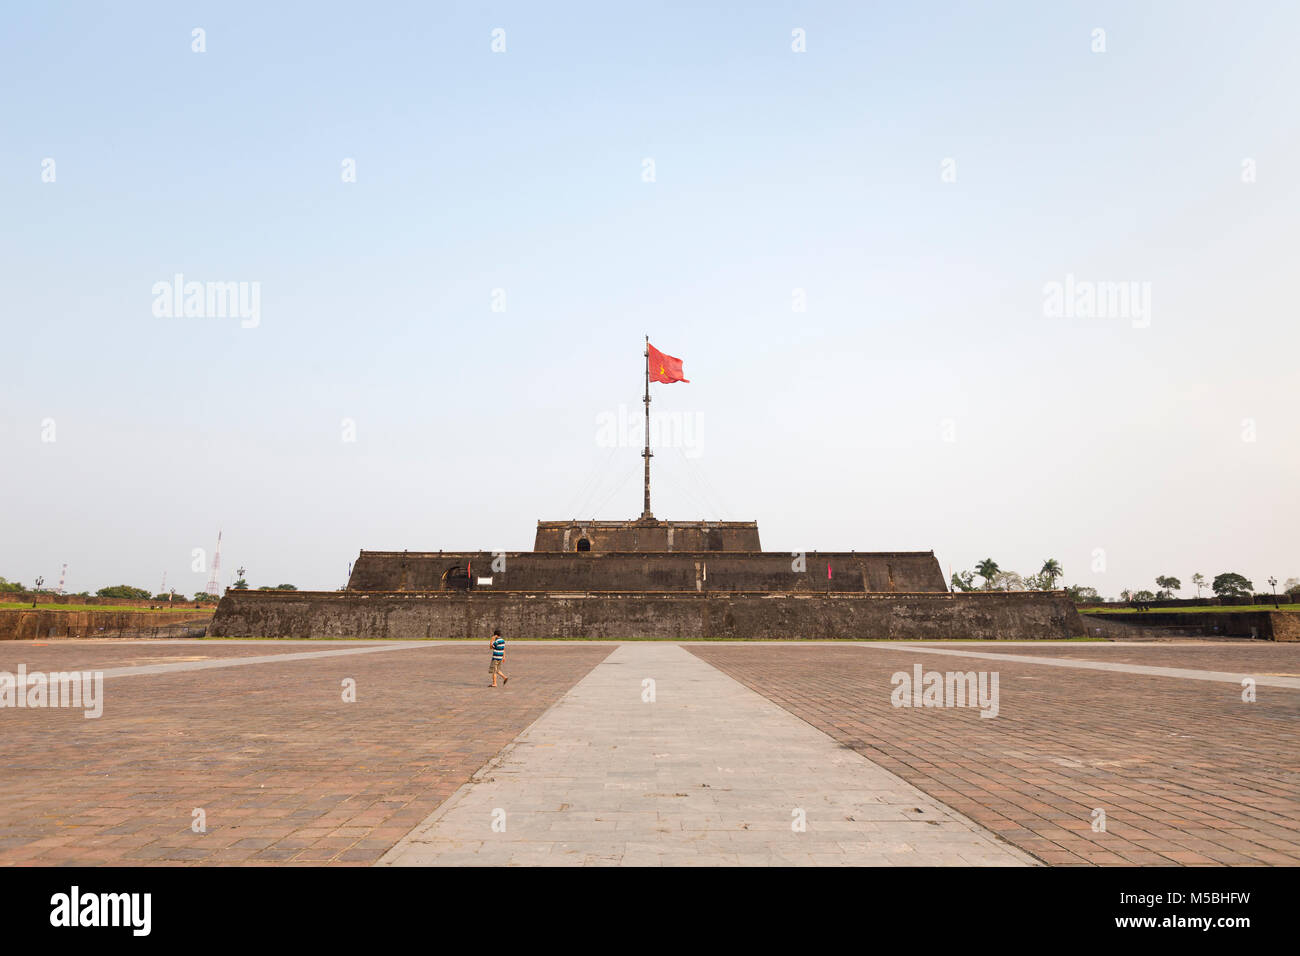 The flag tower, Cot Co, in the citadel of Hue, Vietnam - Stock Image